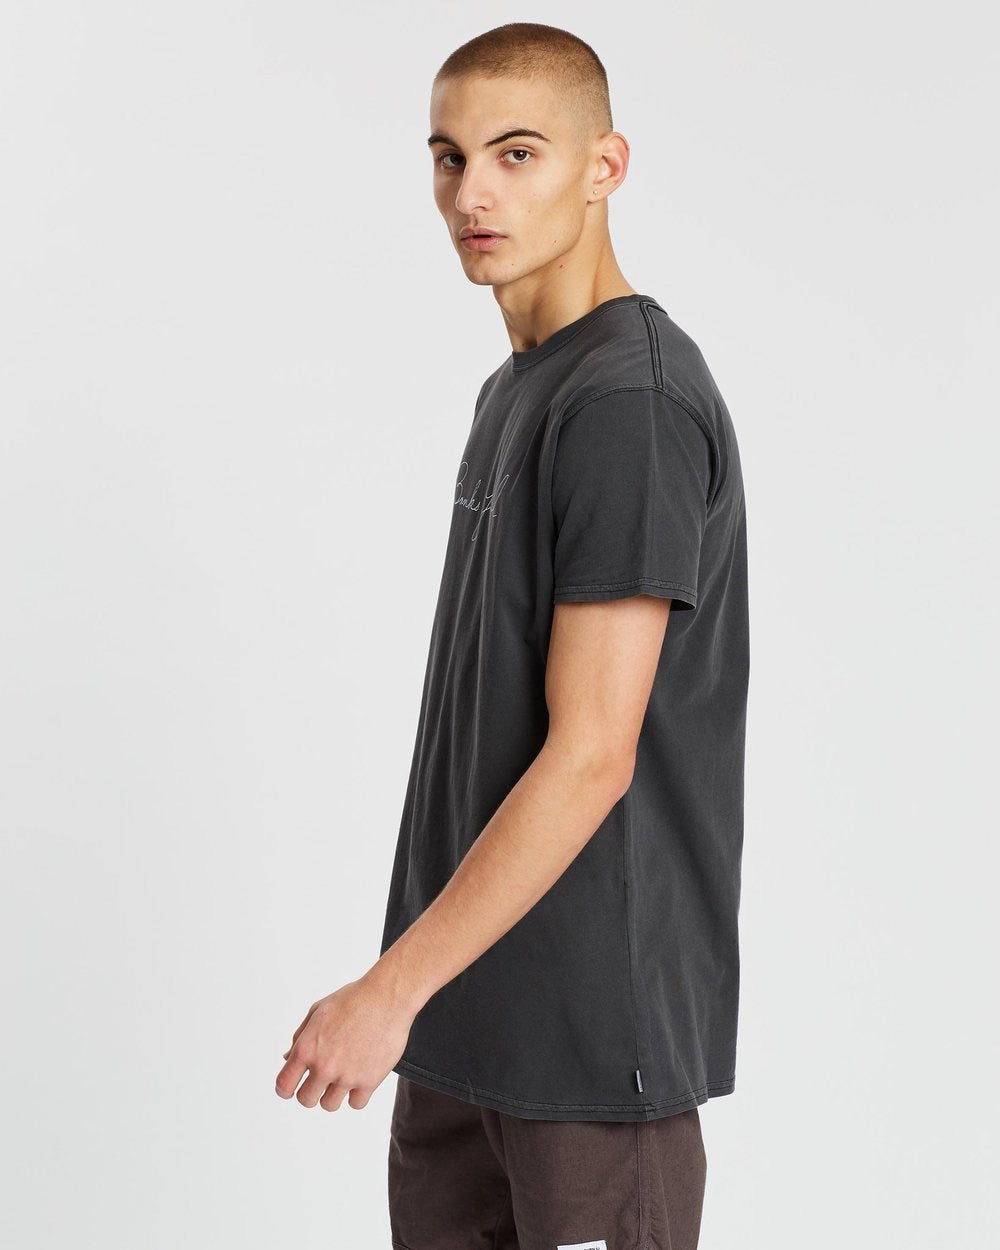 Chances Breeze Tee - Dirty Black